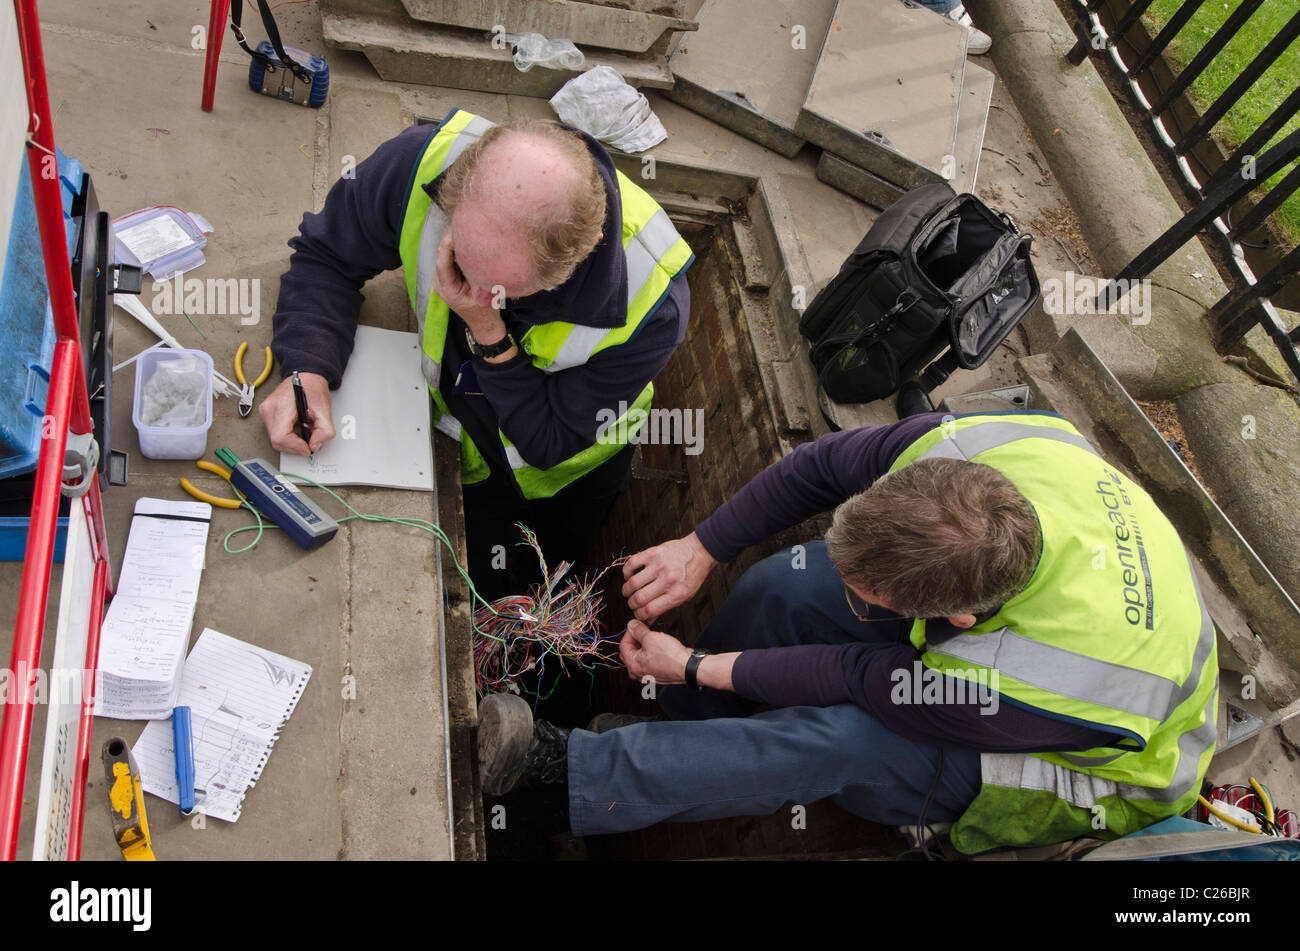 Bt Telephone Engineers In Manhole Stock Photos Phone Cable Wiring Repairing Cables And Wires London Uk Image